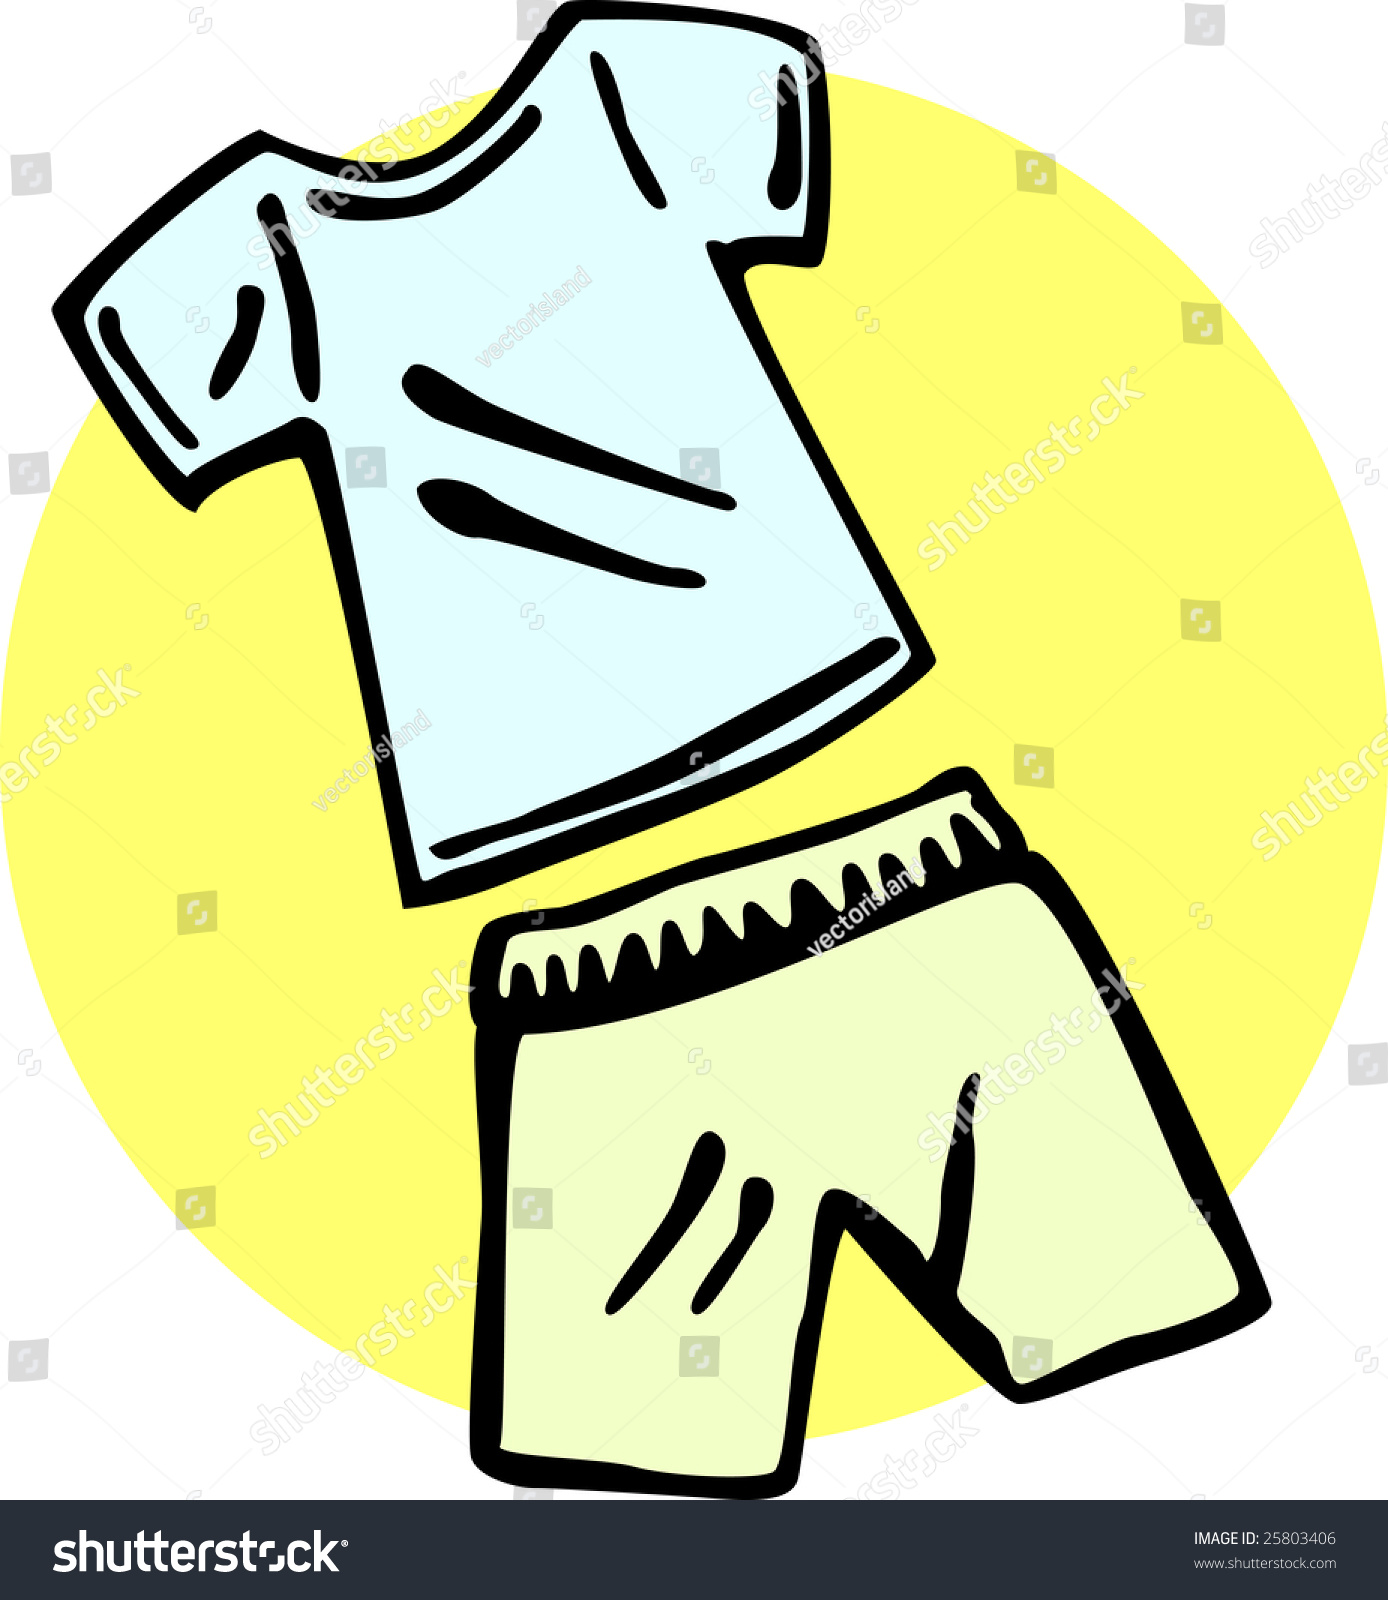 shirt shorts hot weather clothing stock illustration 25803406 rh shutterstock com hot weather clipart images hot weather clothes clipart